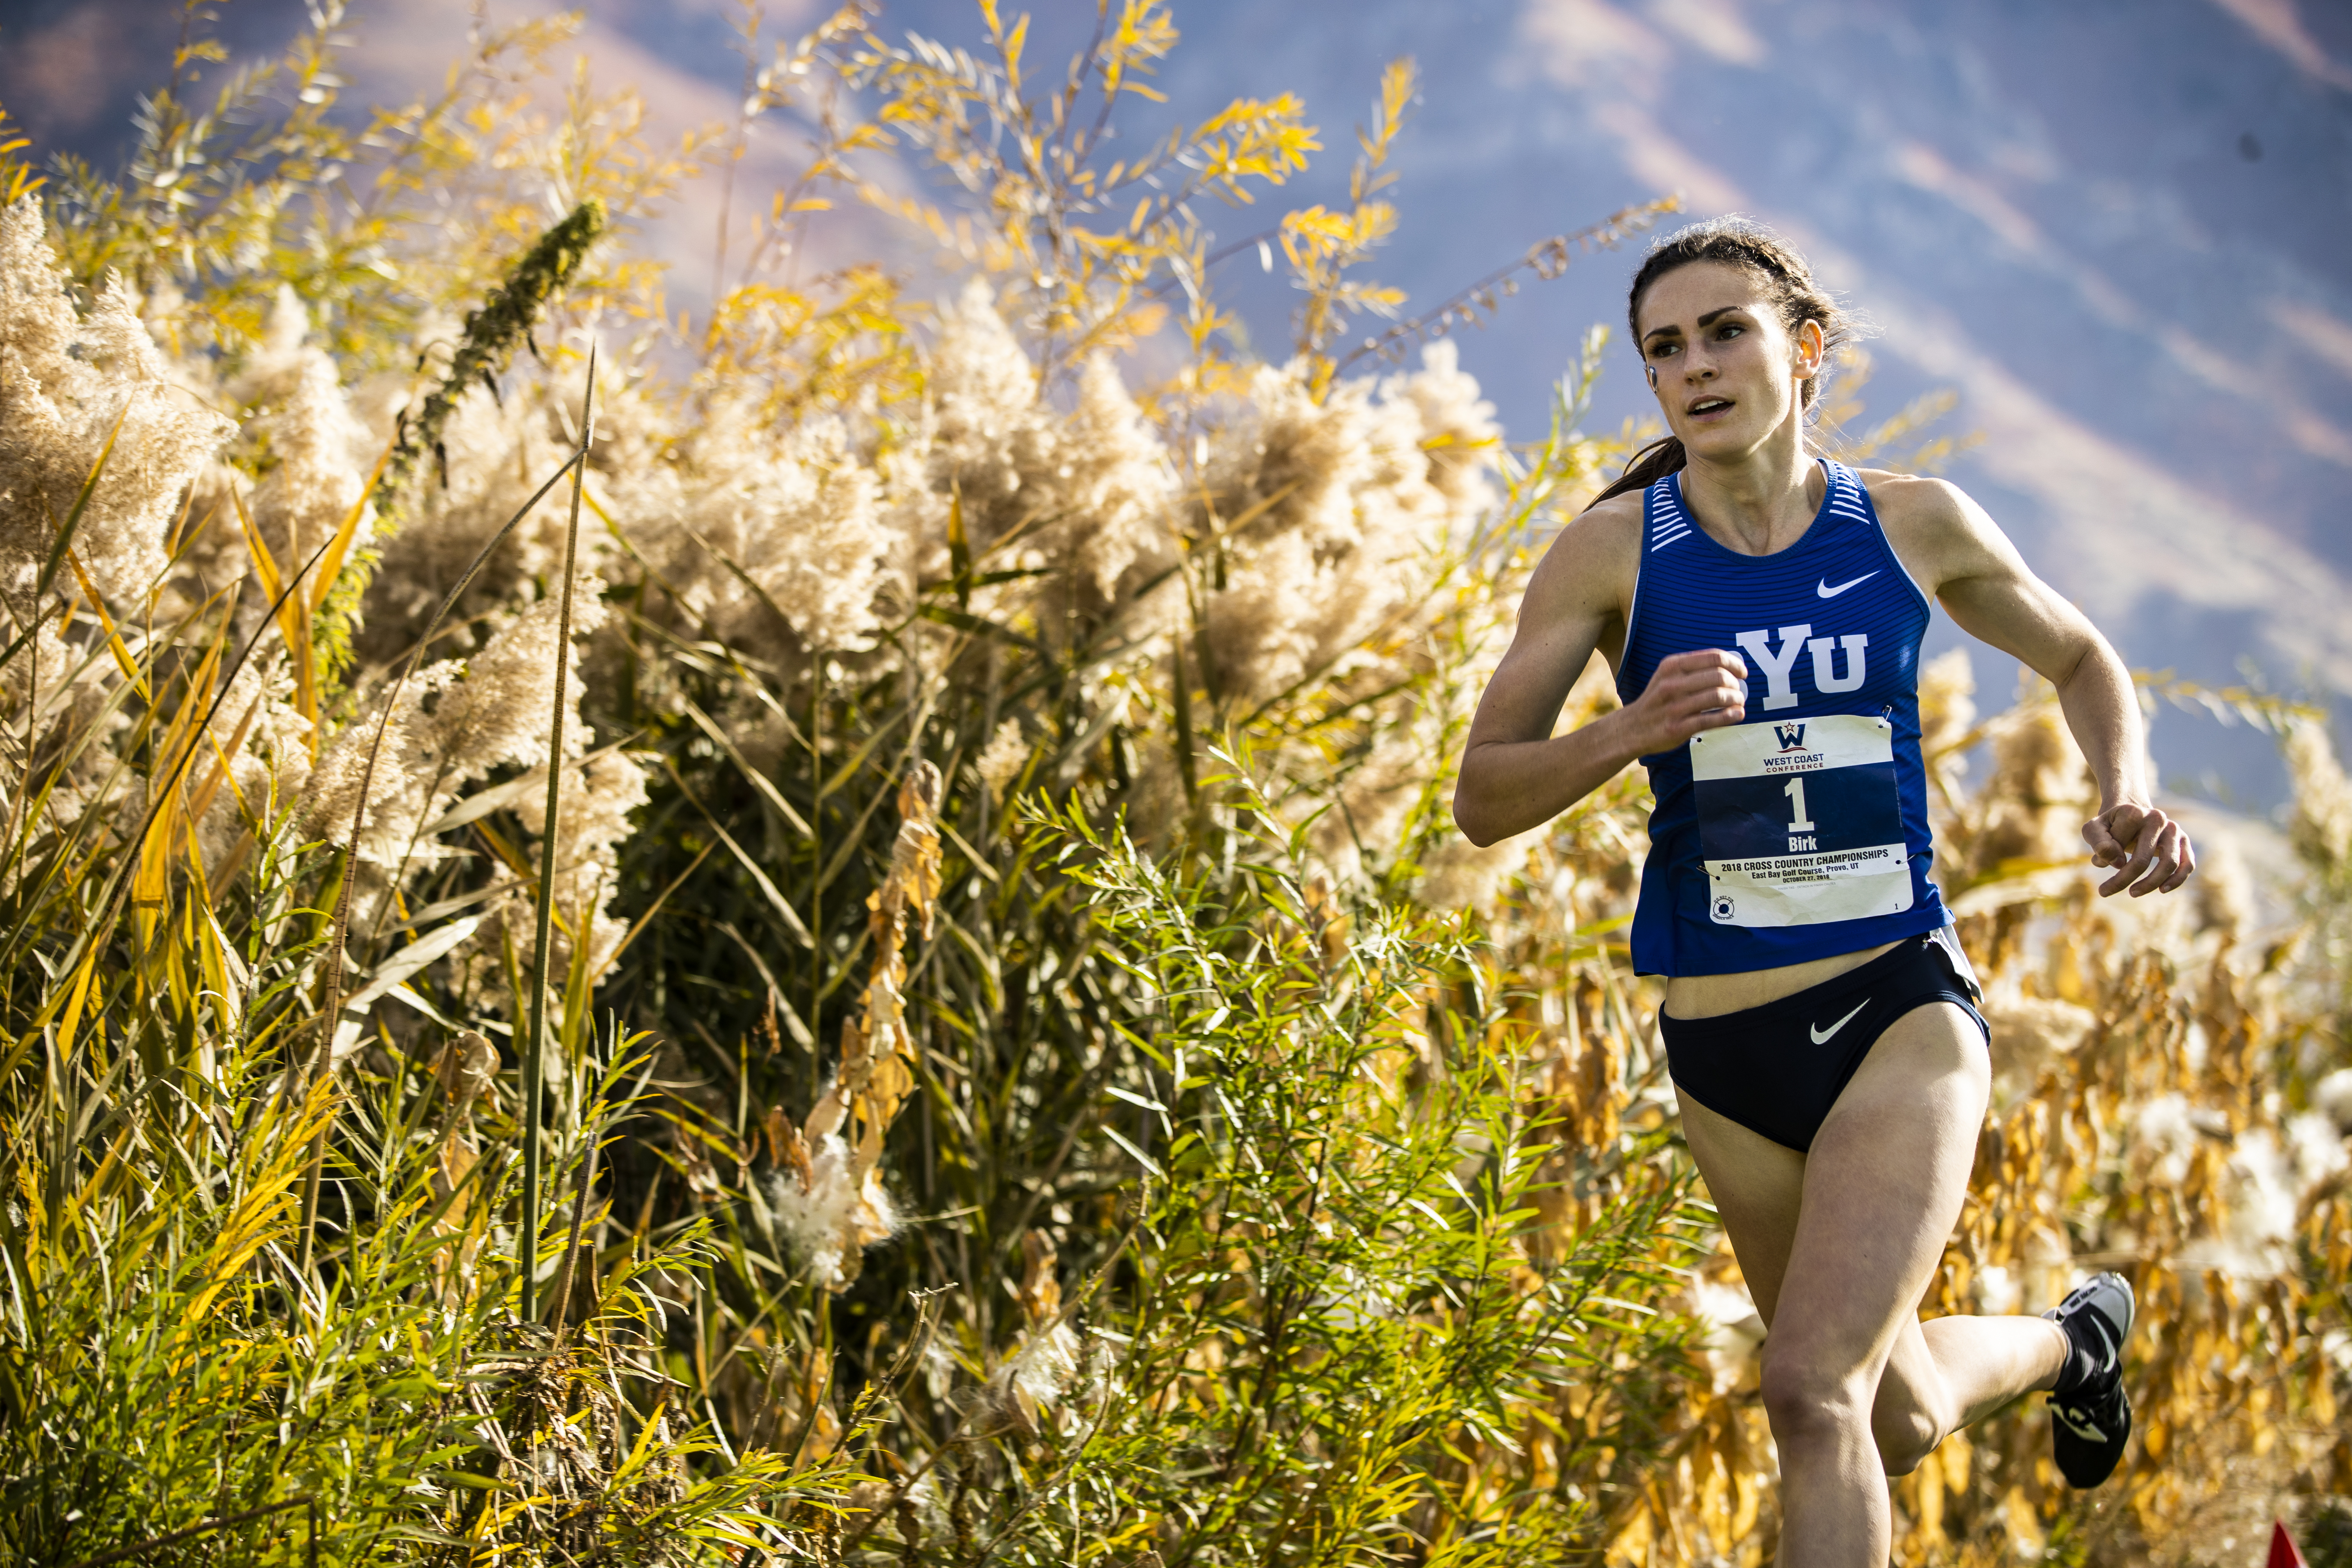 BYU athlete Erica Birk-Jarvis has learned to find balance as a mother, a wife, a full-time college student and an elite college distance runner.